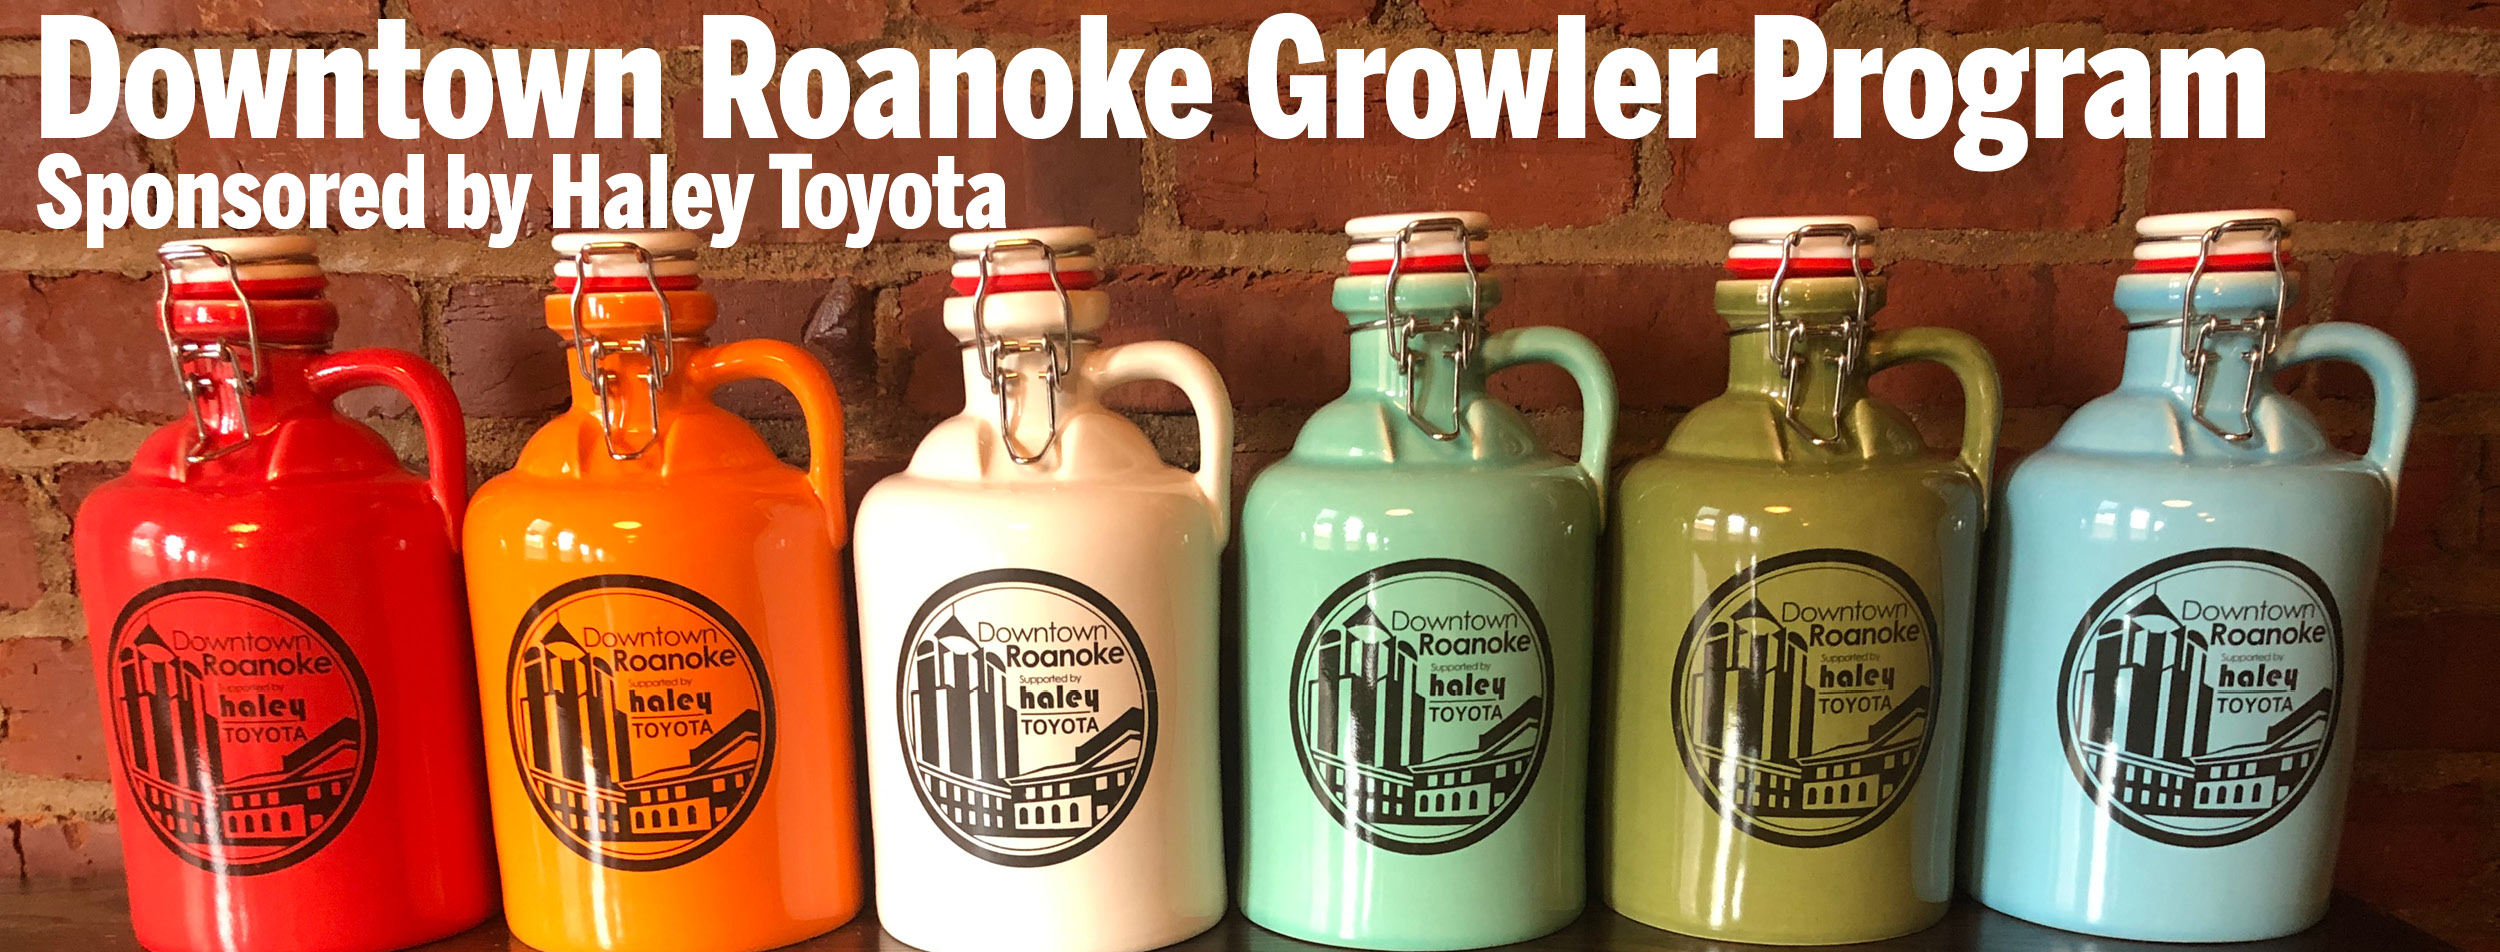 https://www.downtownroanoke.org/what-we-do/downtown-growlers